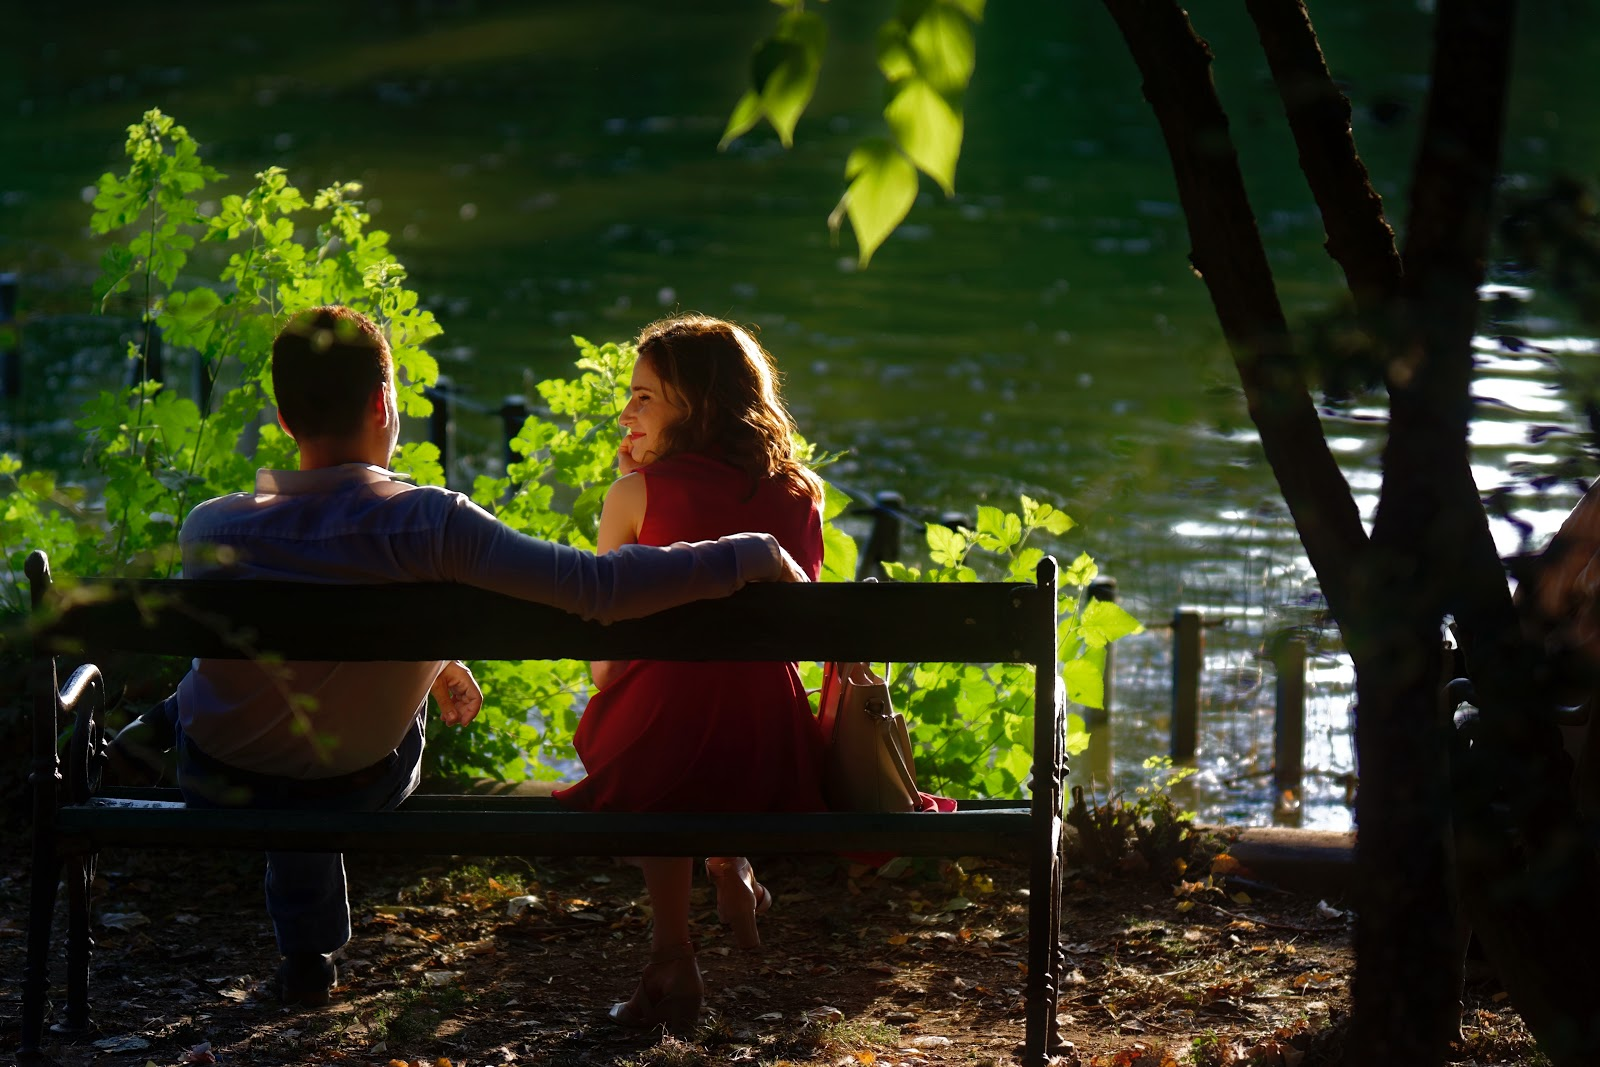 A couple sitting on a bench by a lake